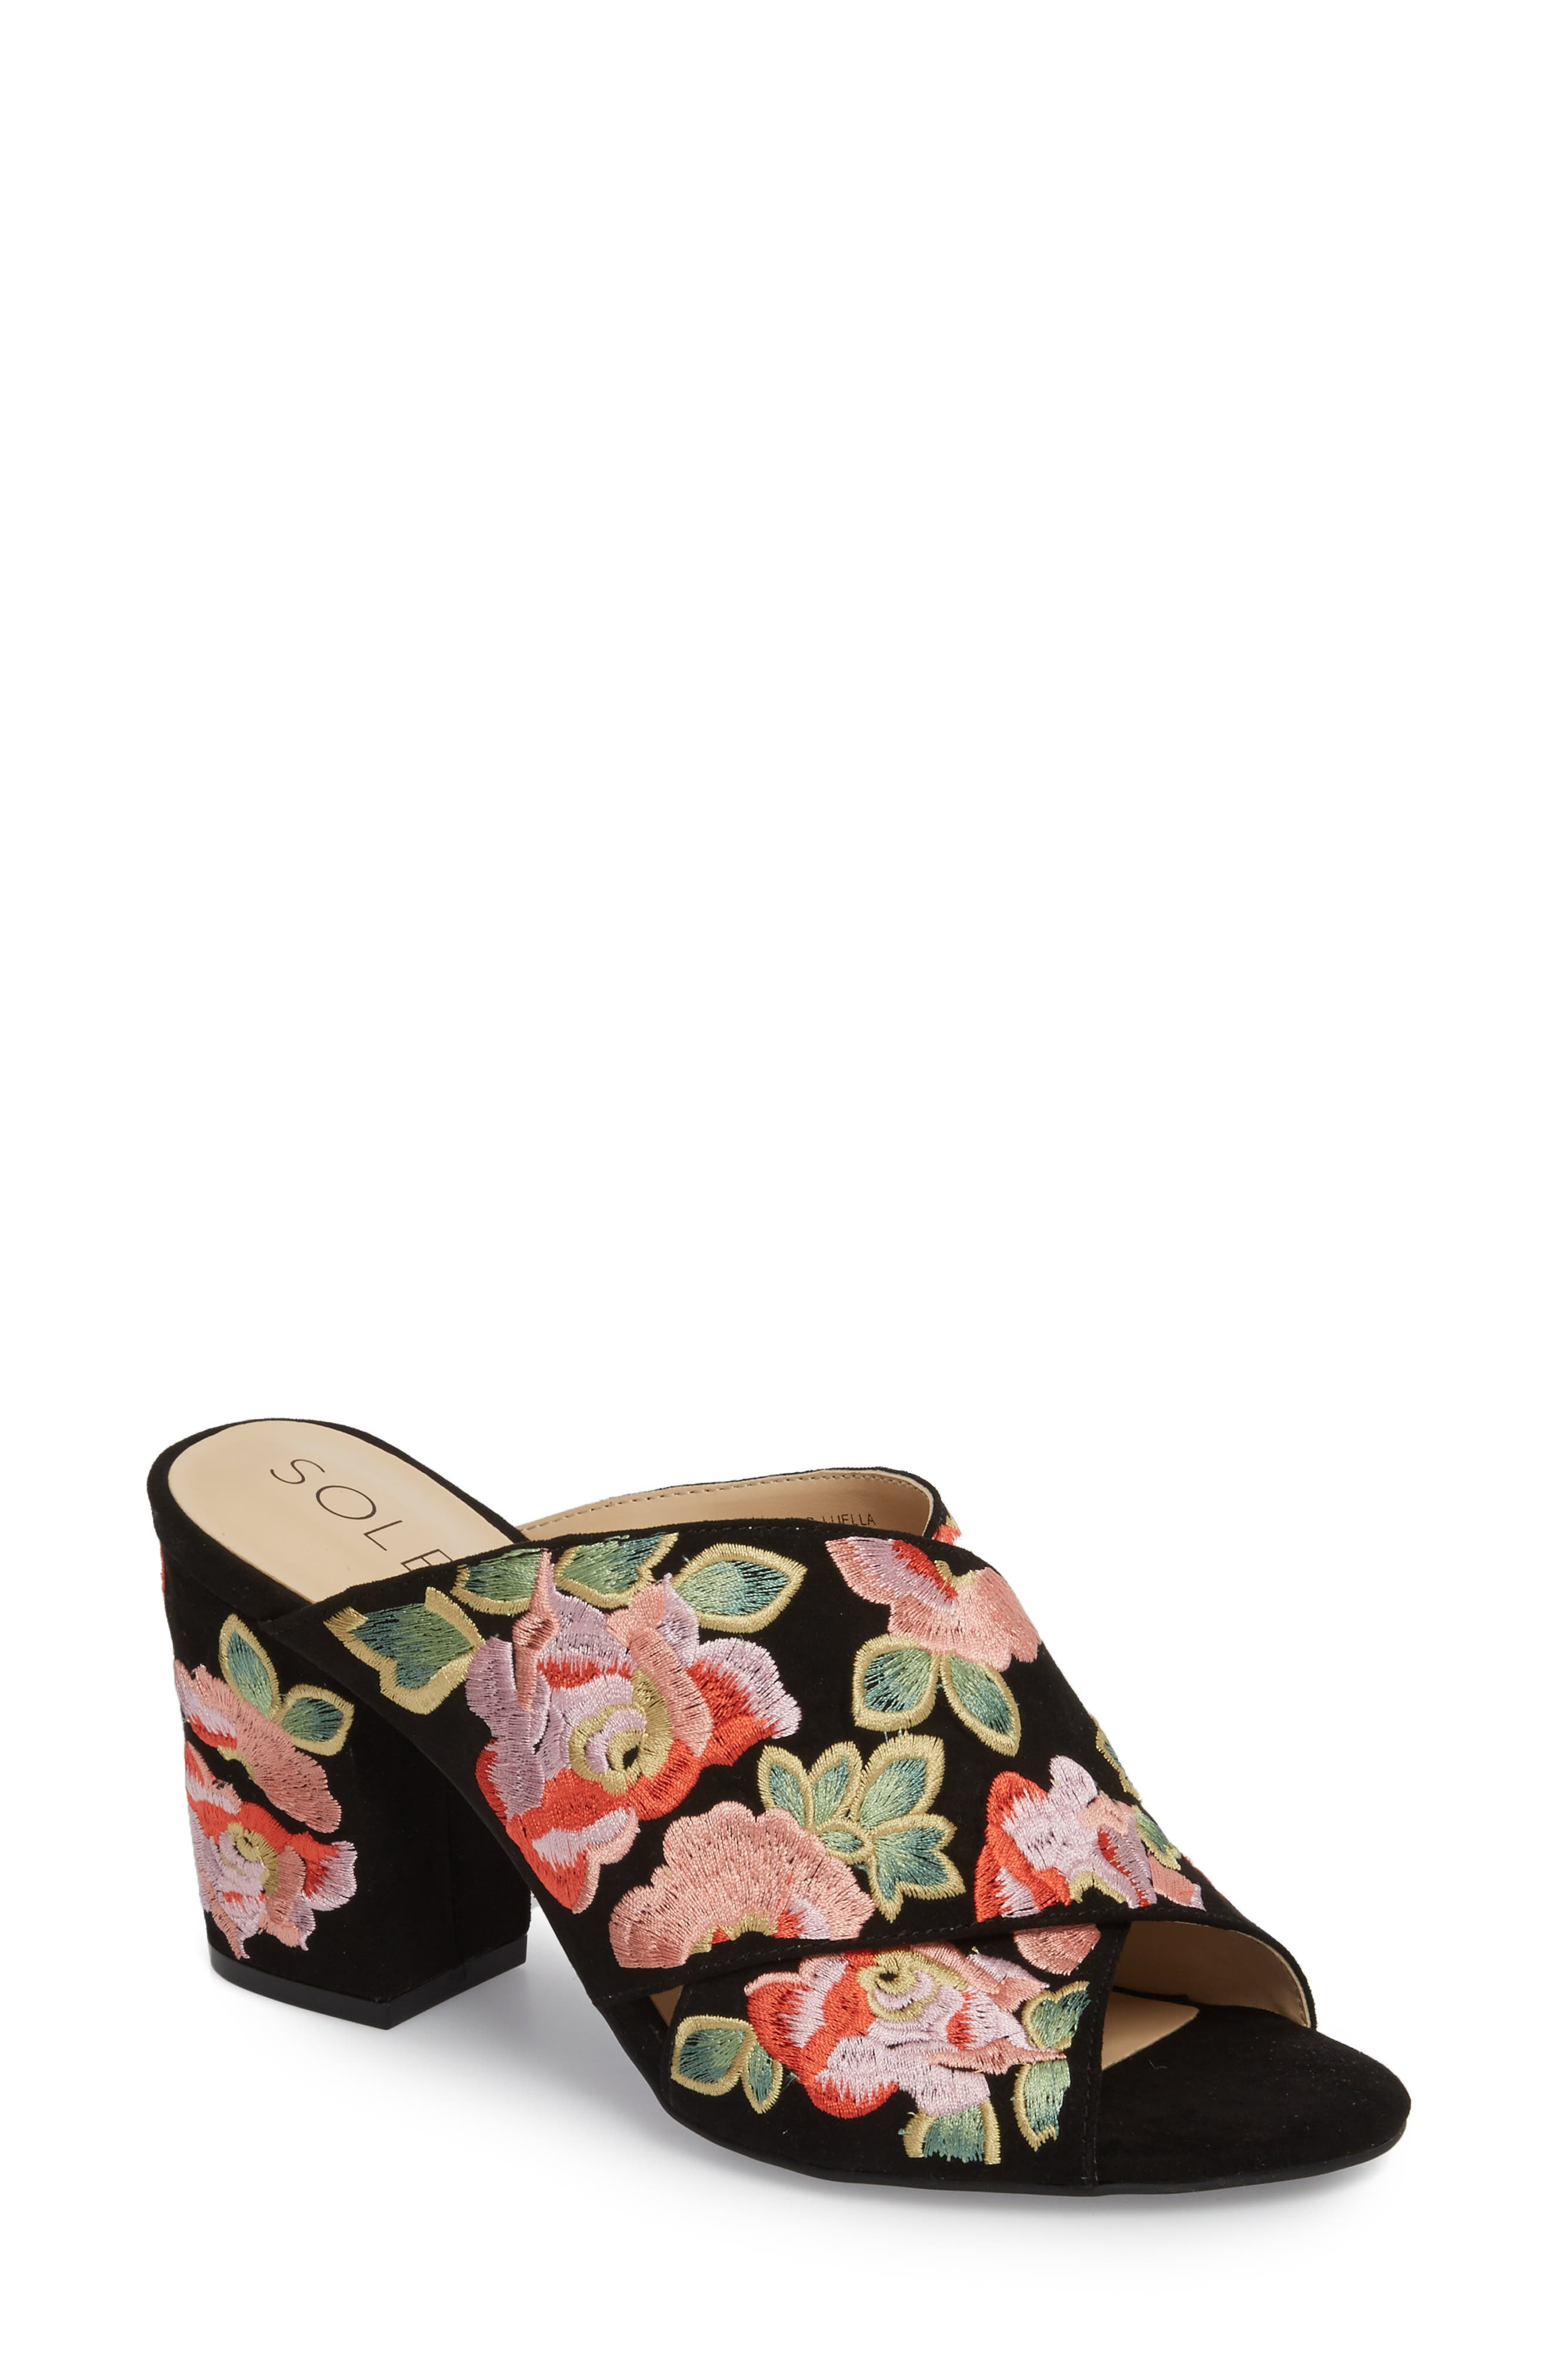 Luella Flower Embroidered Slide,                             Main thumbnail 1, color,                             Black/ Coral Multi Embroidery